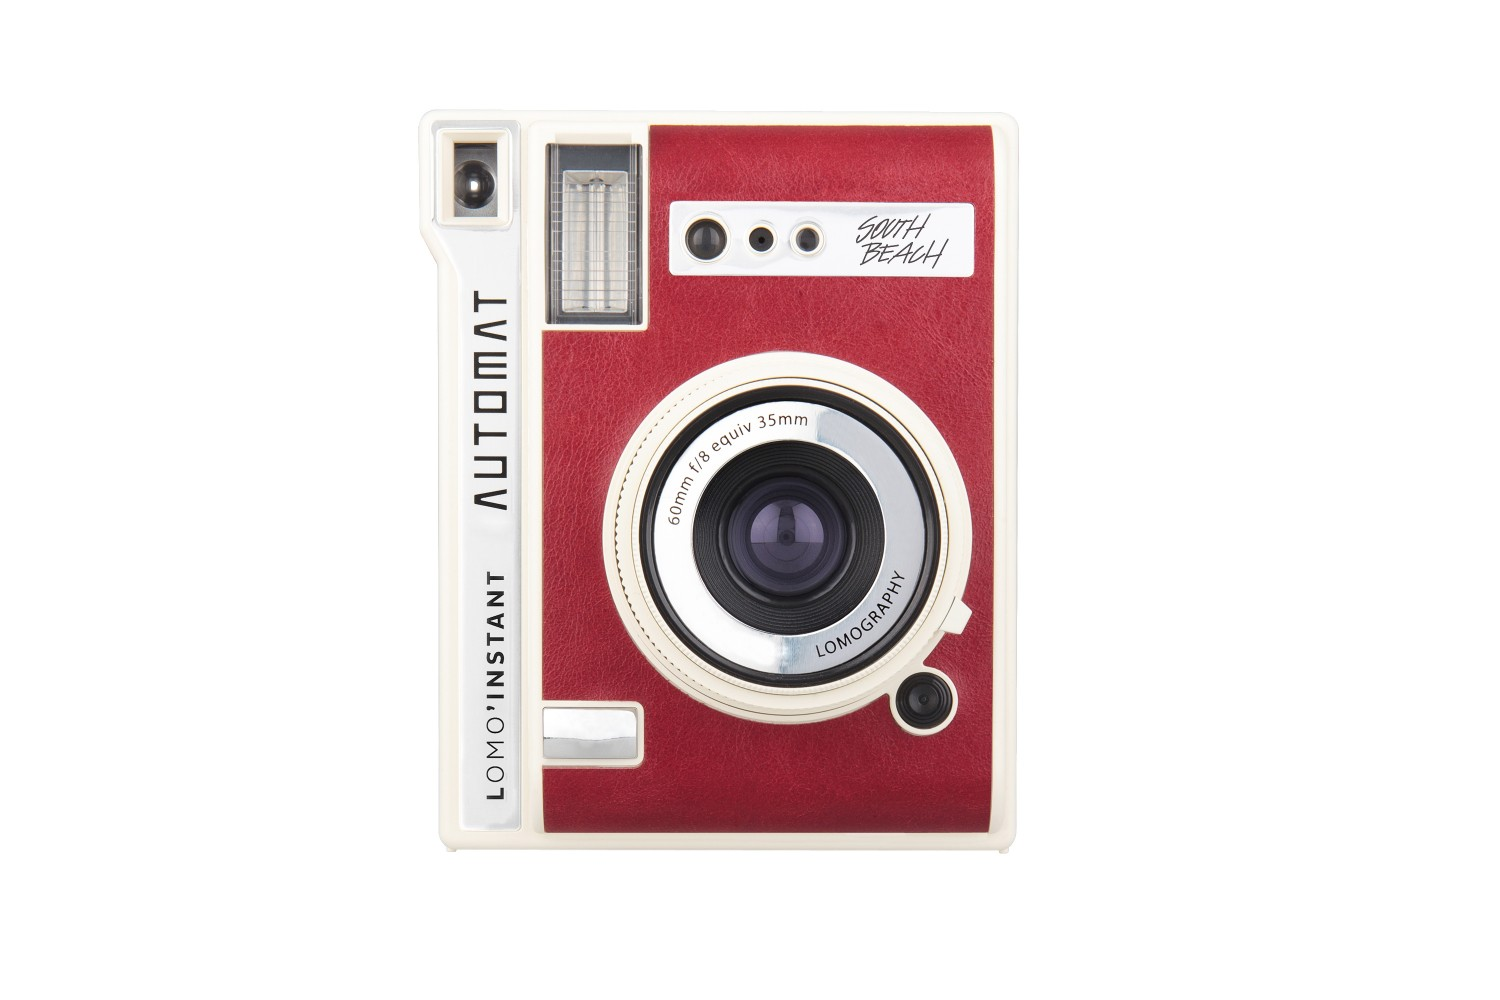 Lomo'Instant Automat South Beach 版本連鏡頭套裝